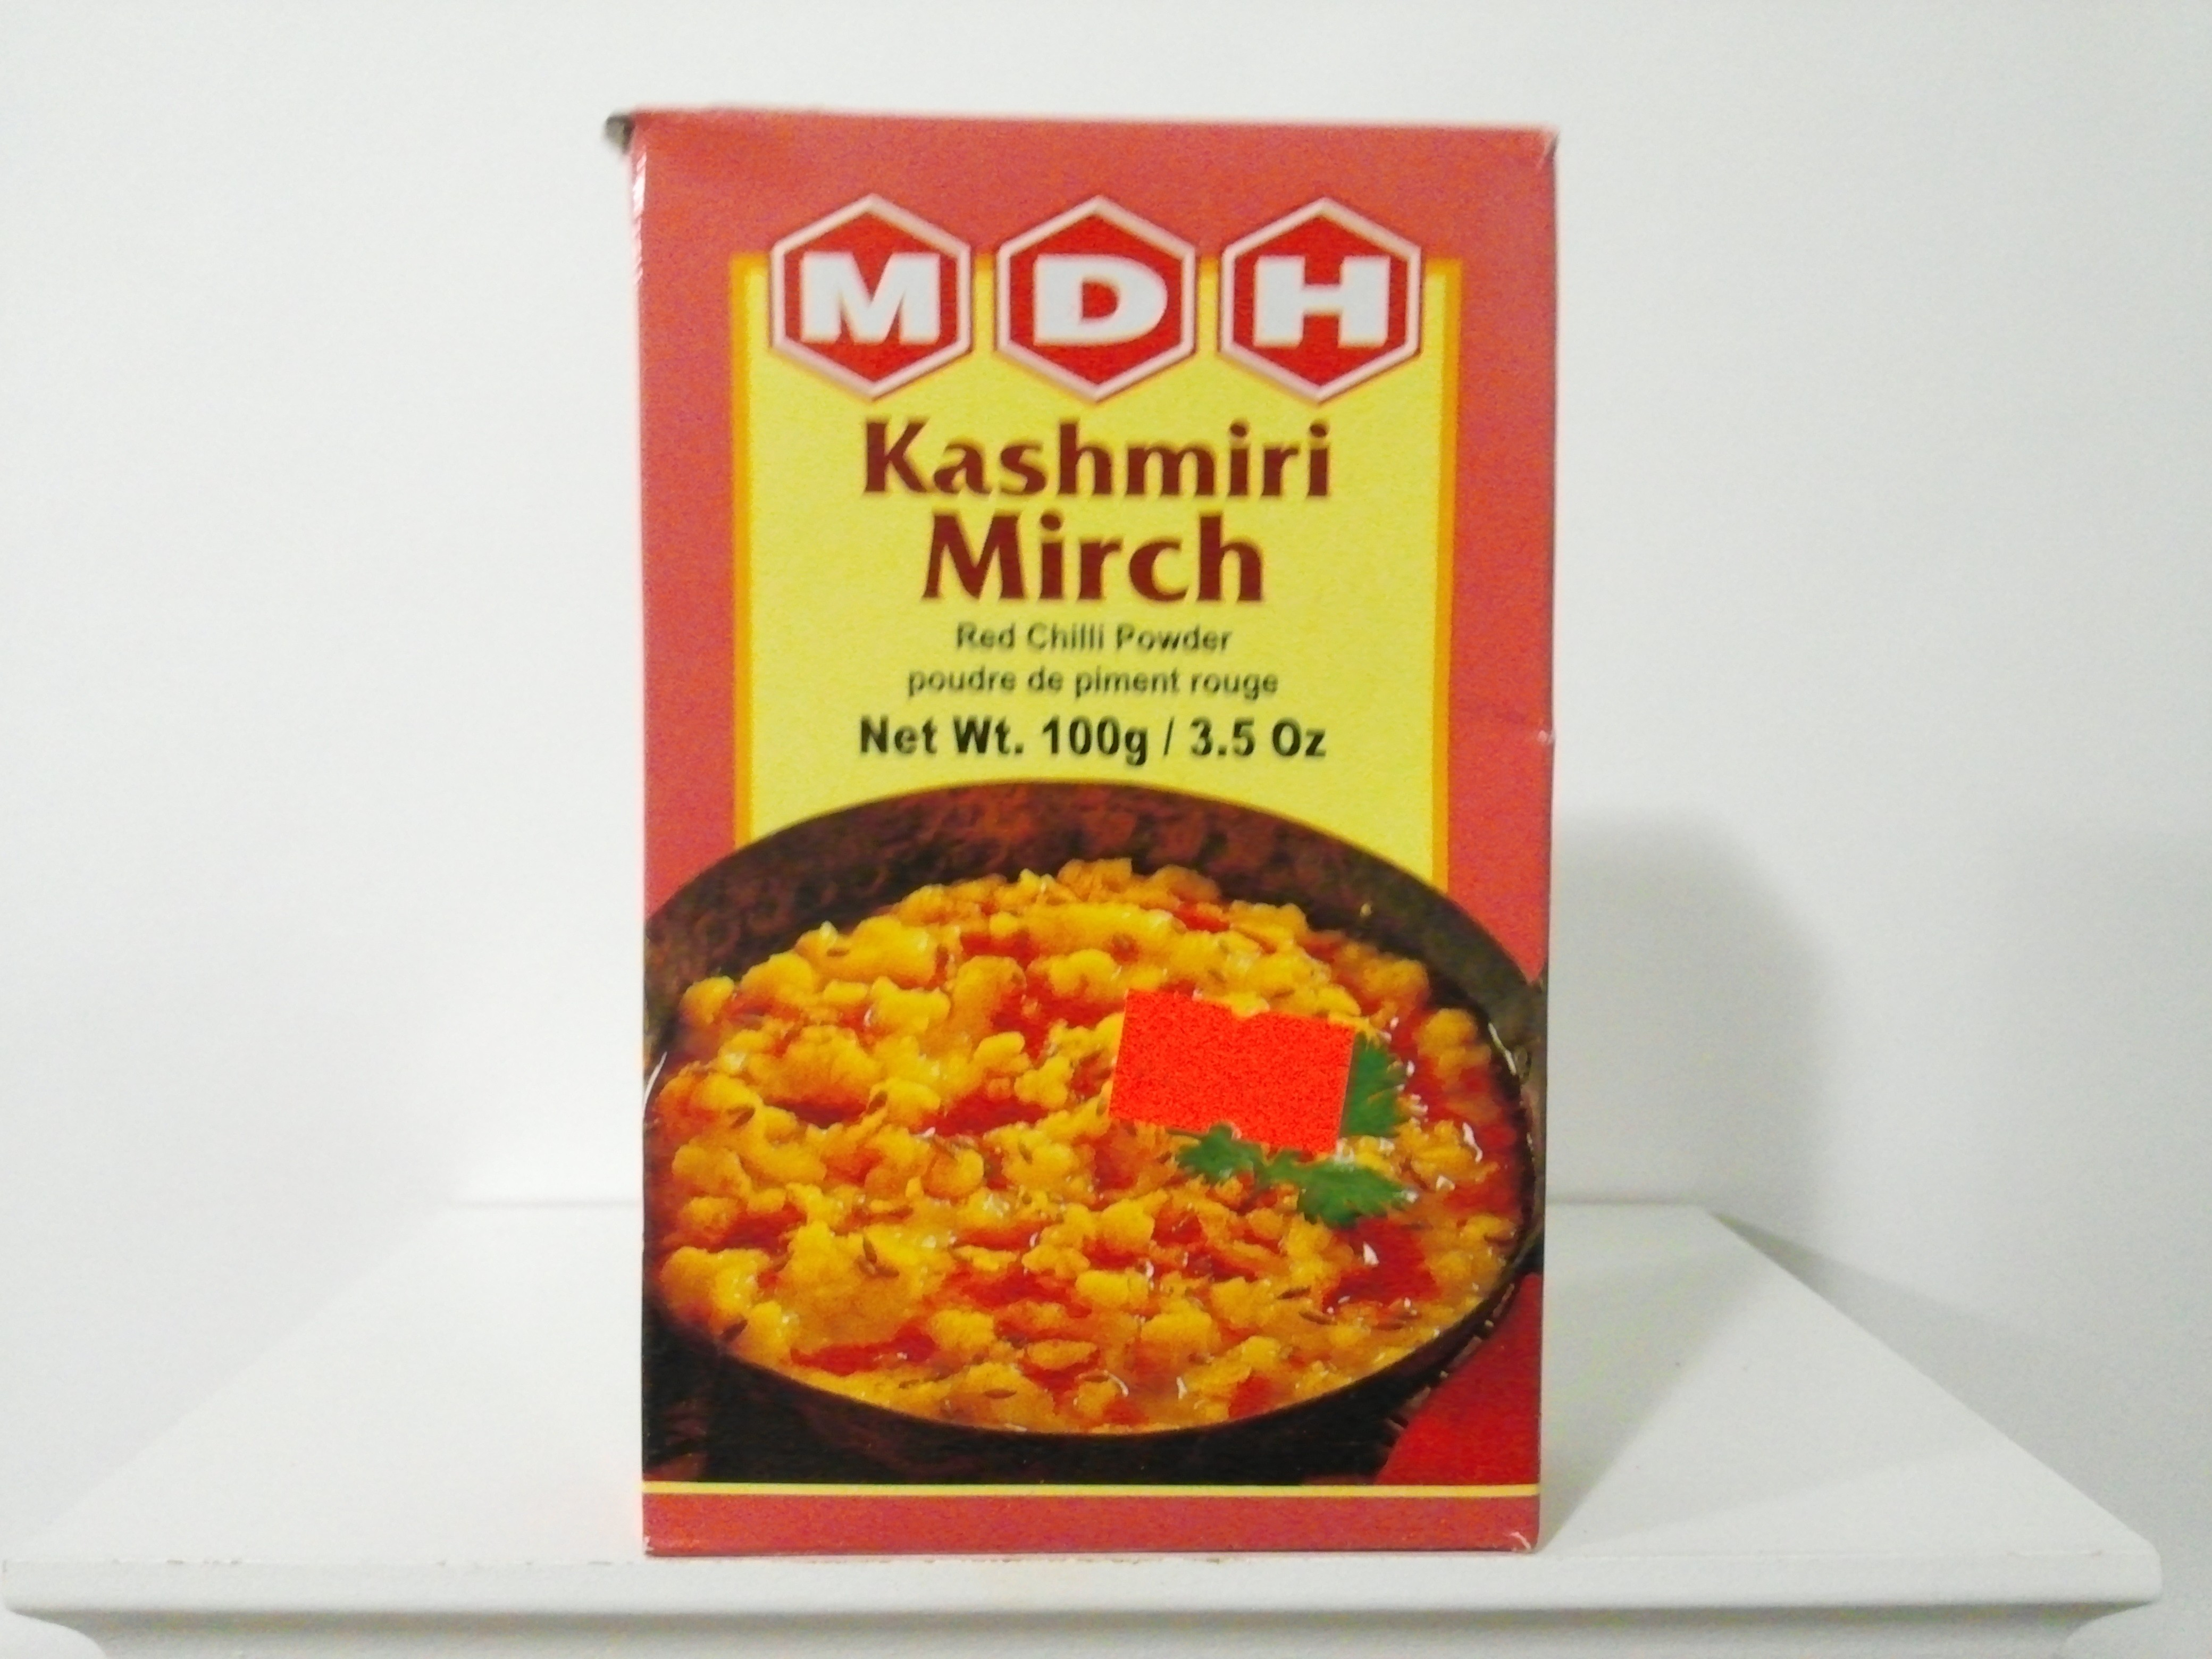 MDH Kashmiri Mirch Powder 100 grm